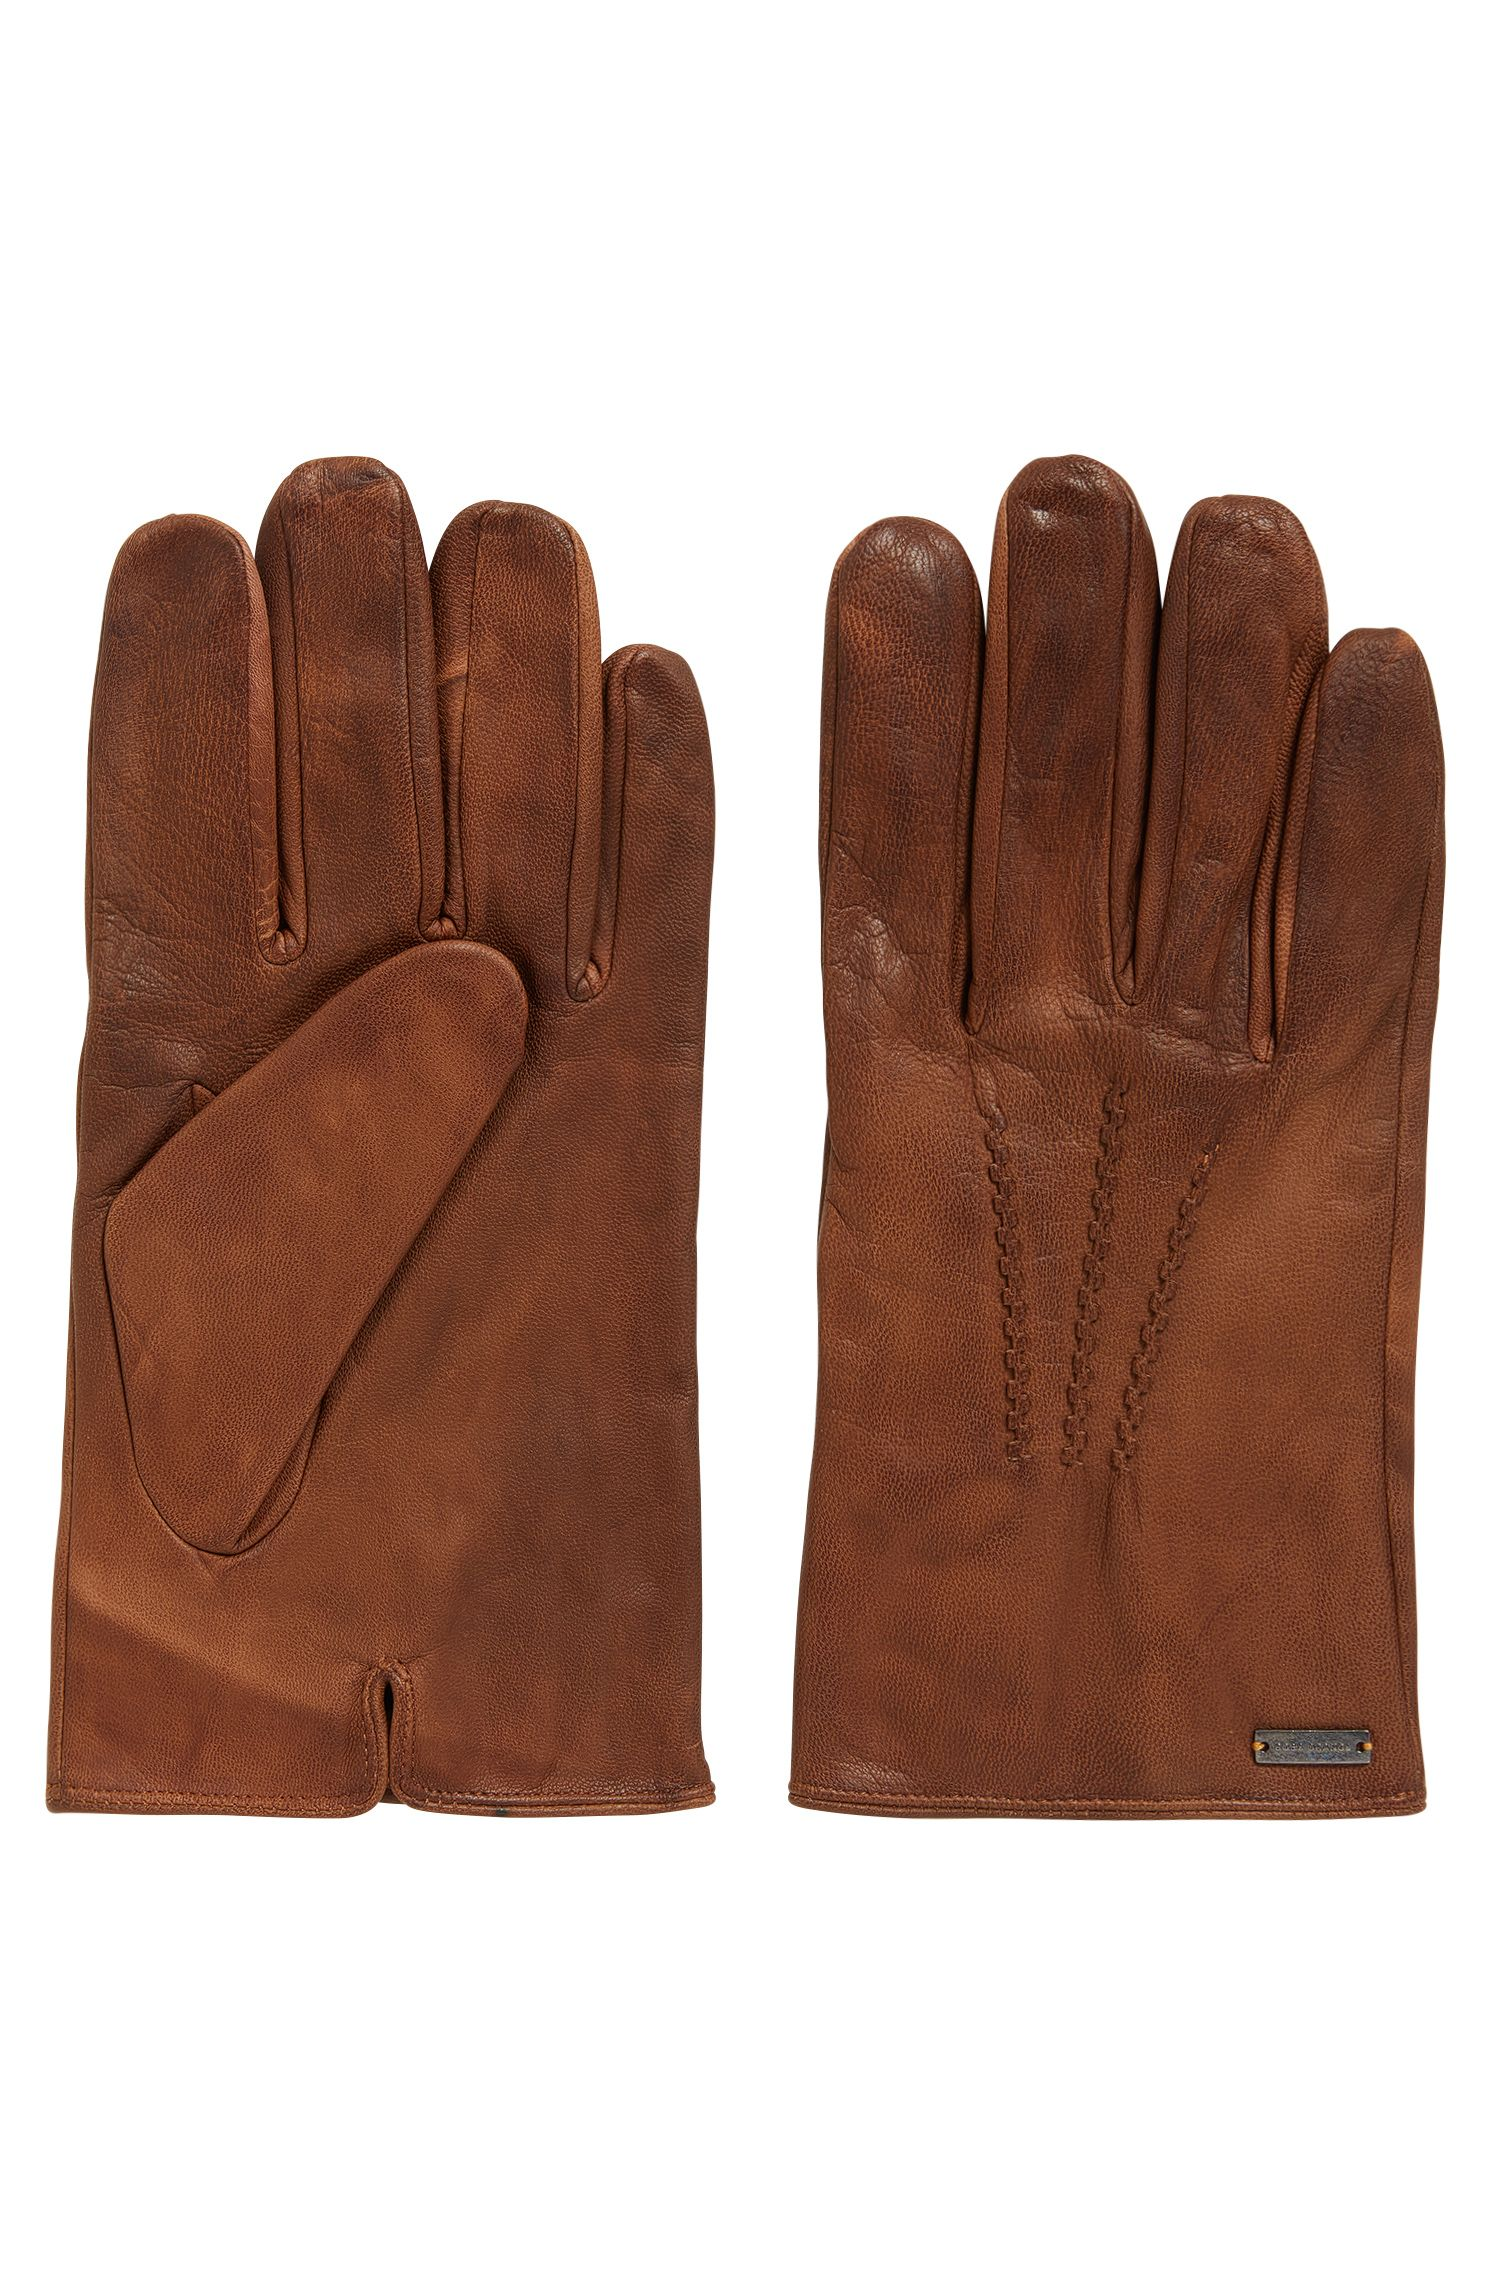 Vintage-style gloves in waxed leather